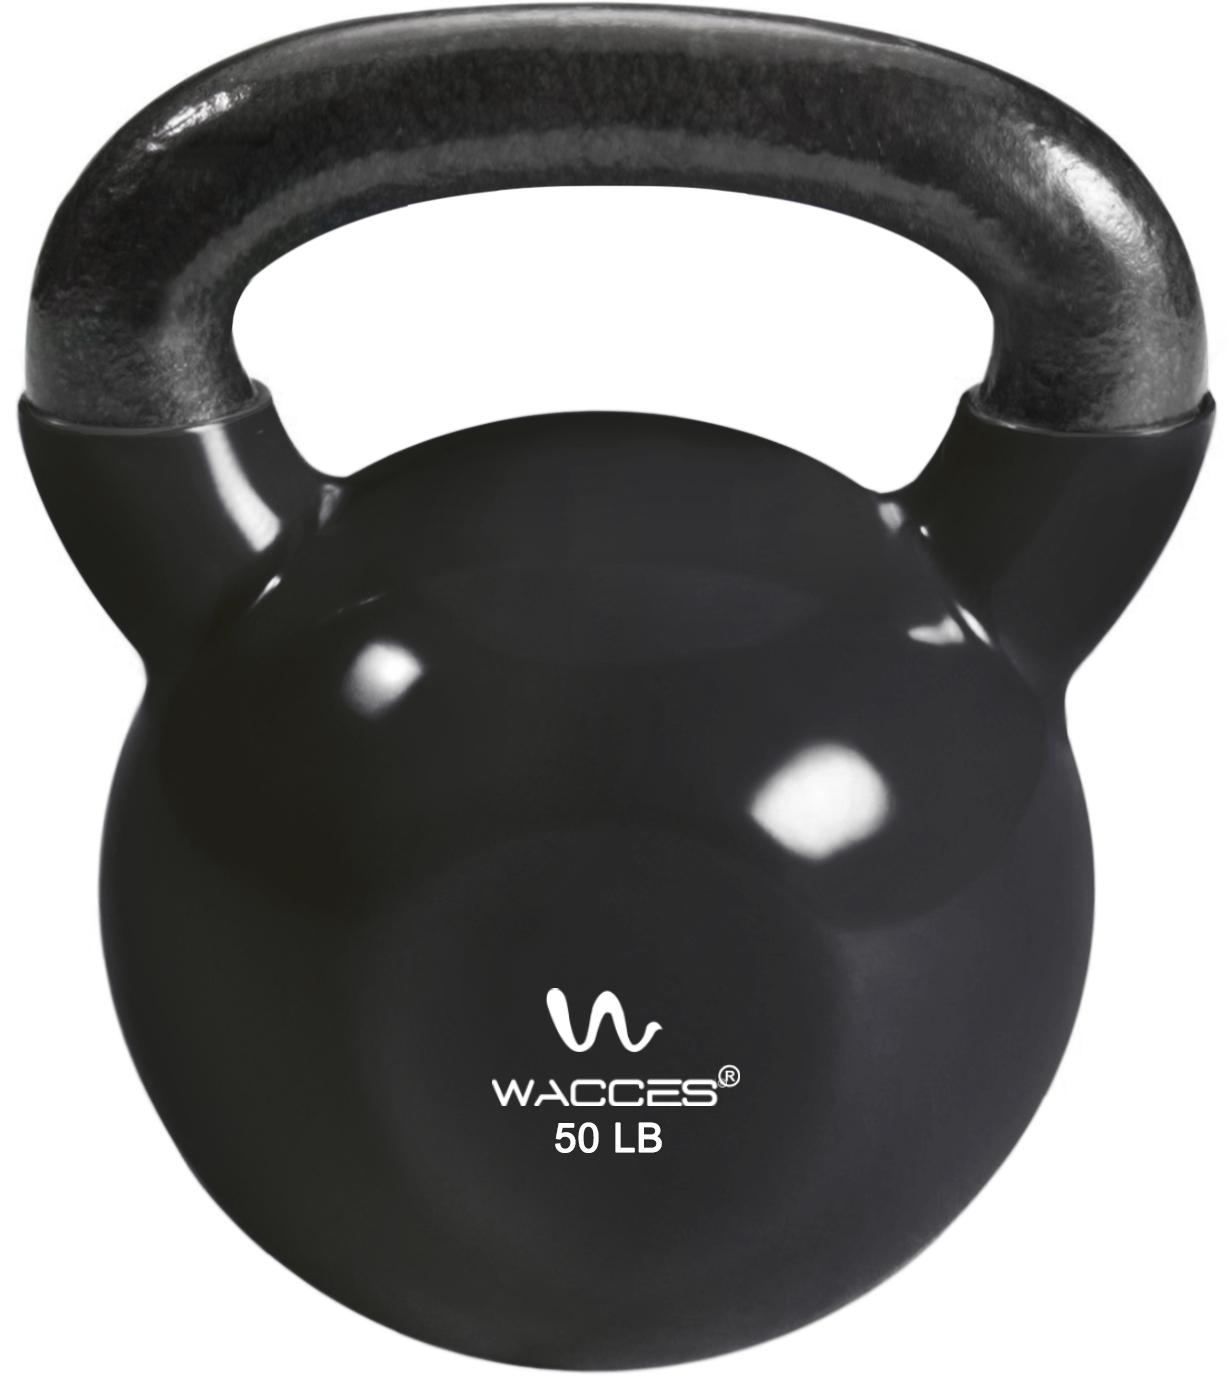 Kettlebell Courses Home: Wacces Kettlebell For Cross Training Home Exercise Workout